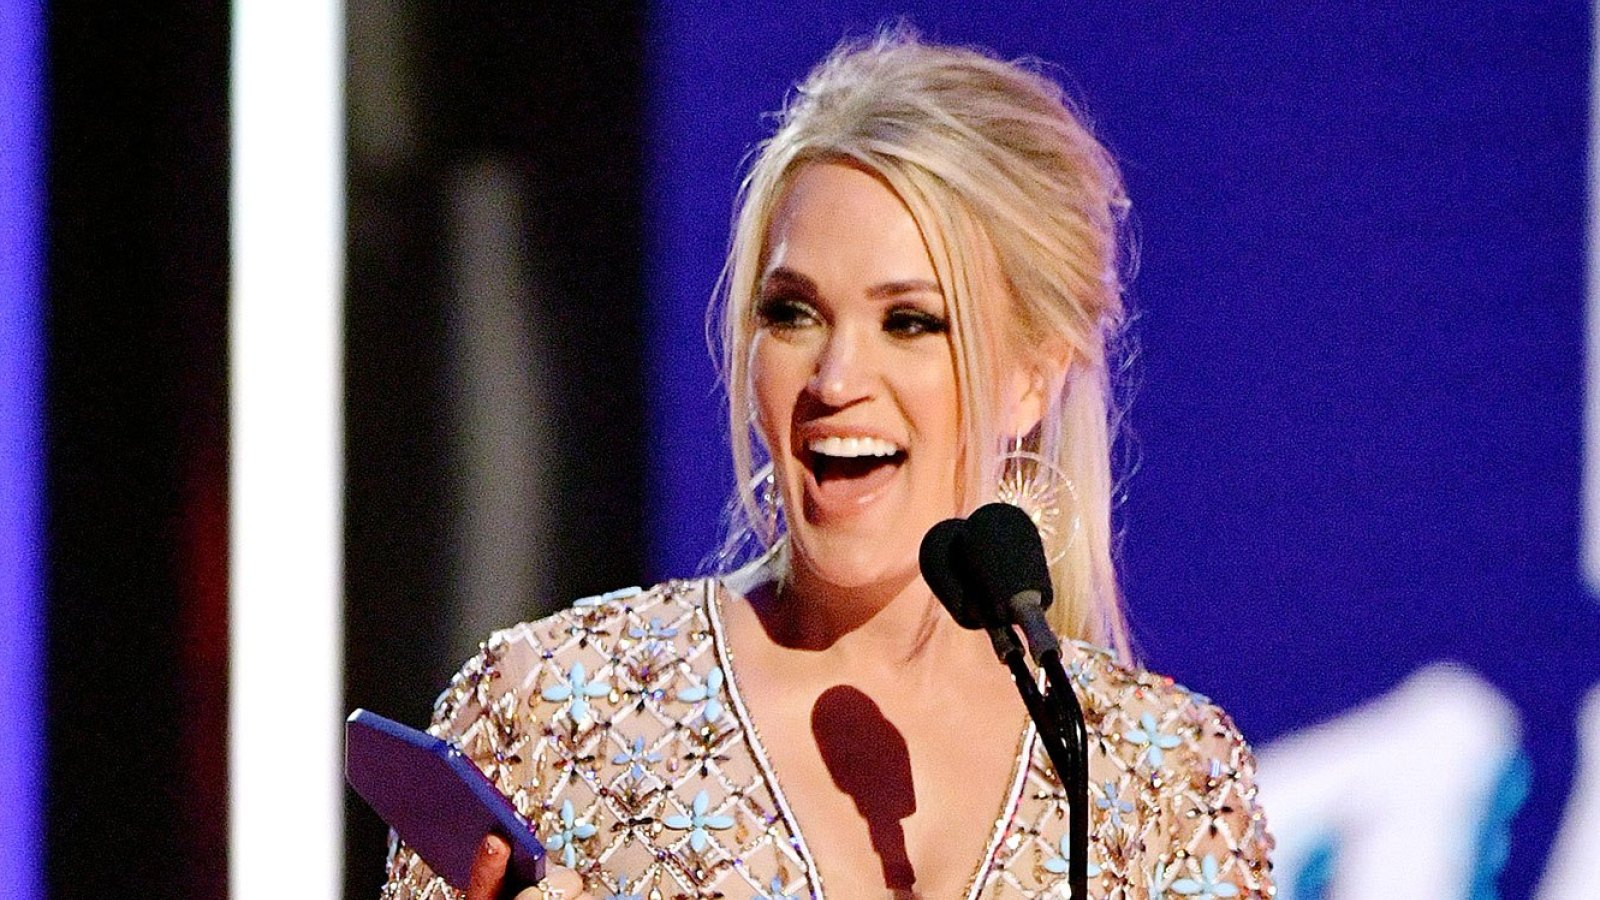 CMT Awards 2019 Carrie Underwood Earns Historic 20th Win 1600x900